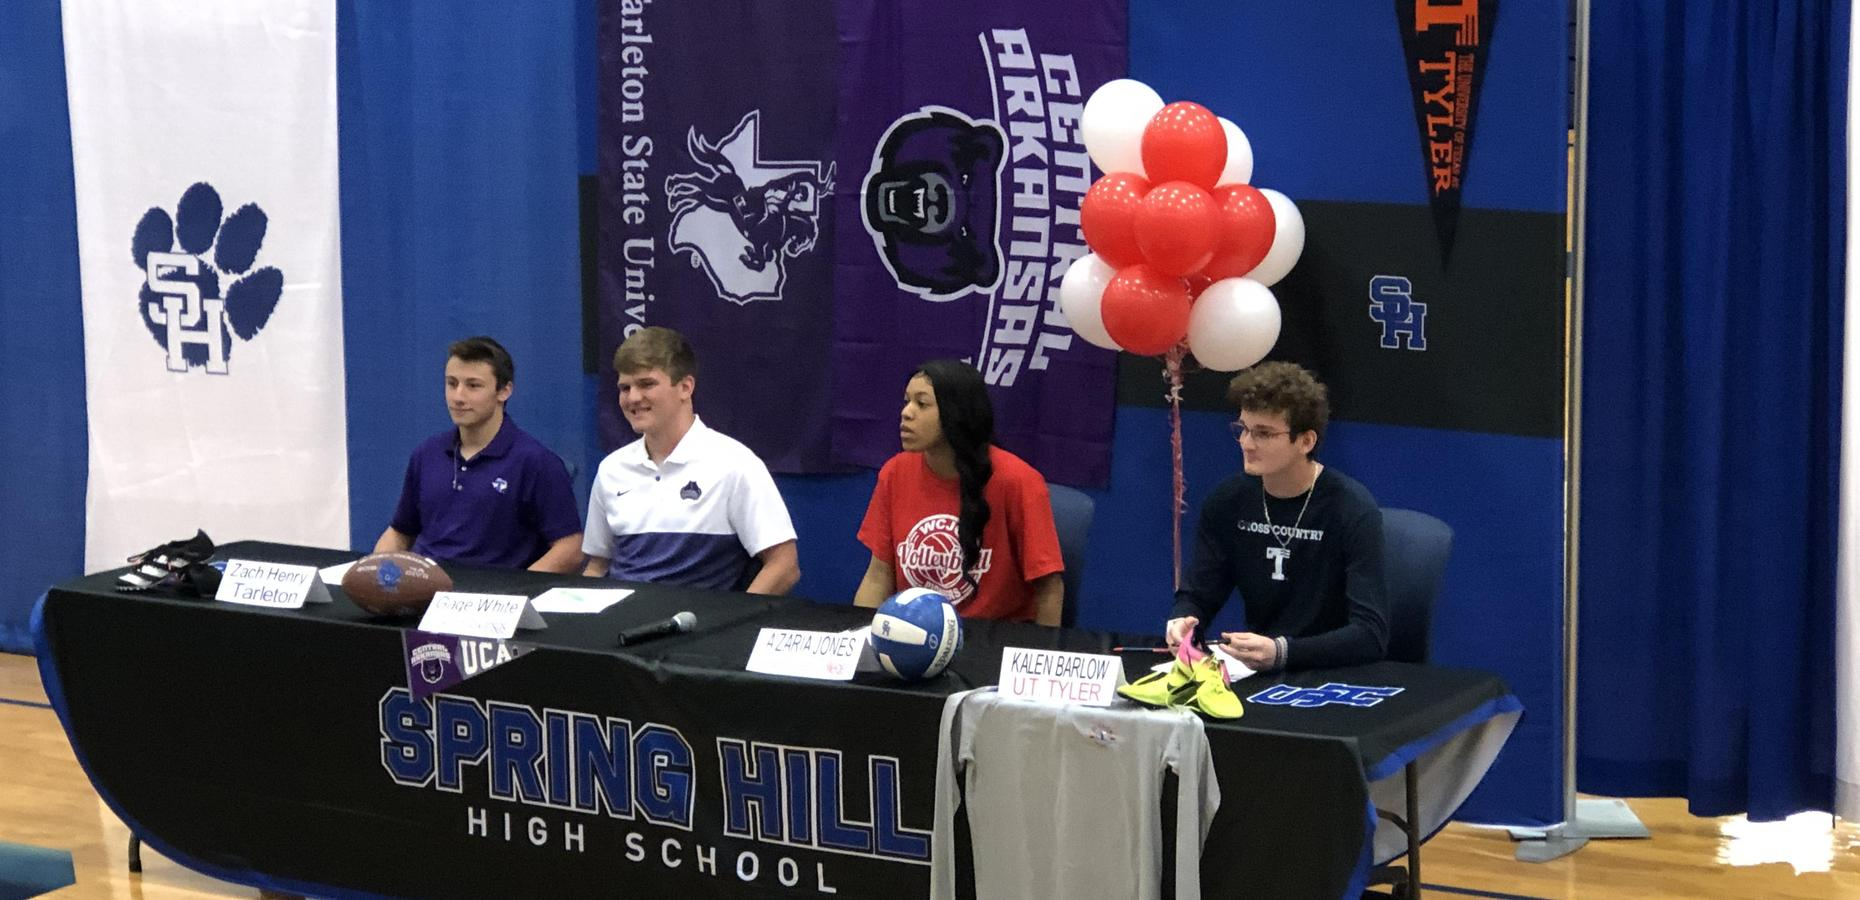 2019-20 College signings